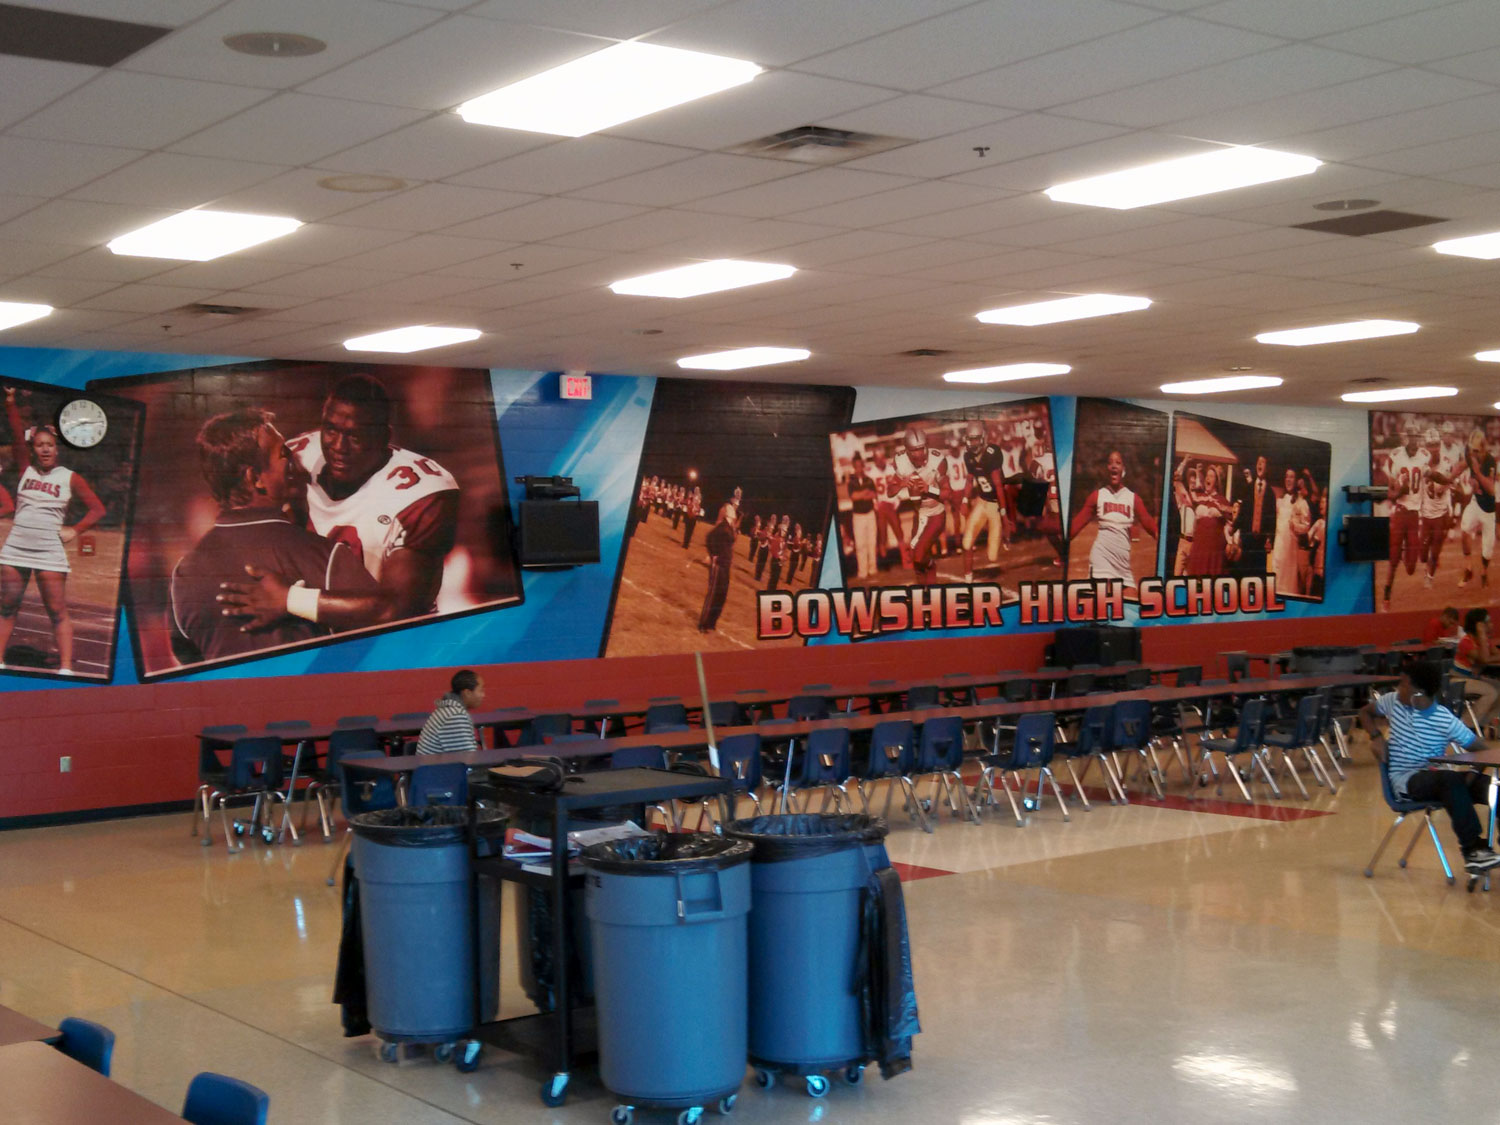 Toledo Bowsher High School Cafeteria Wall Graphic